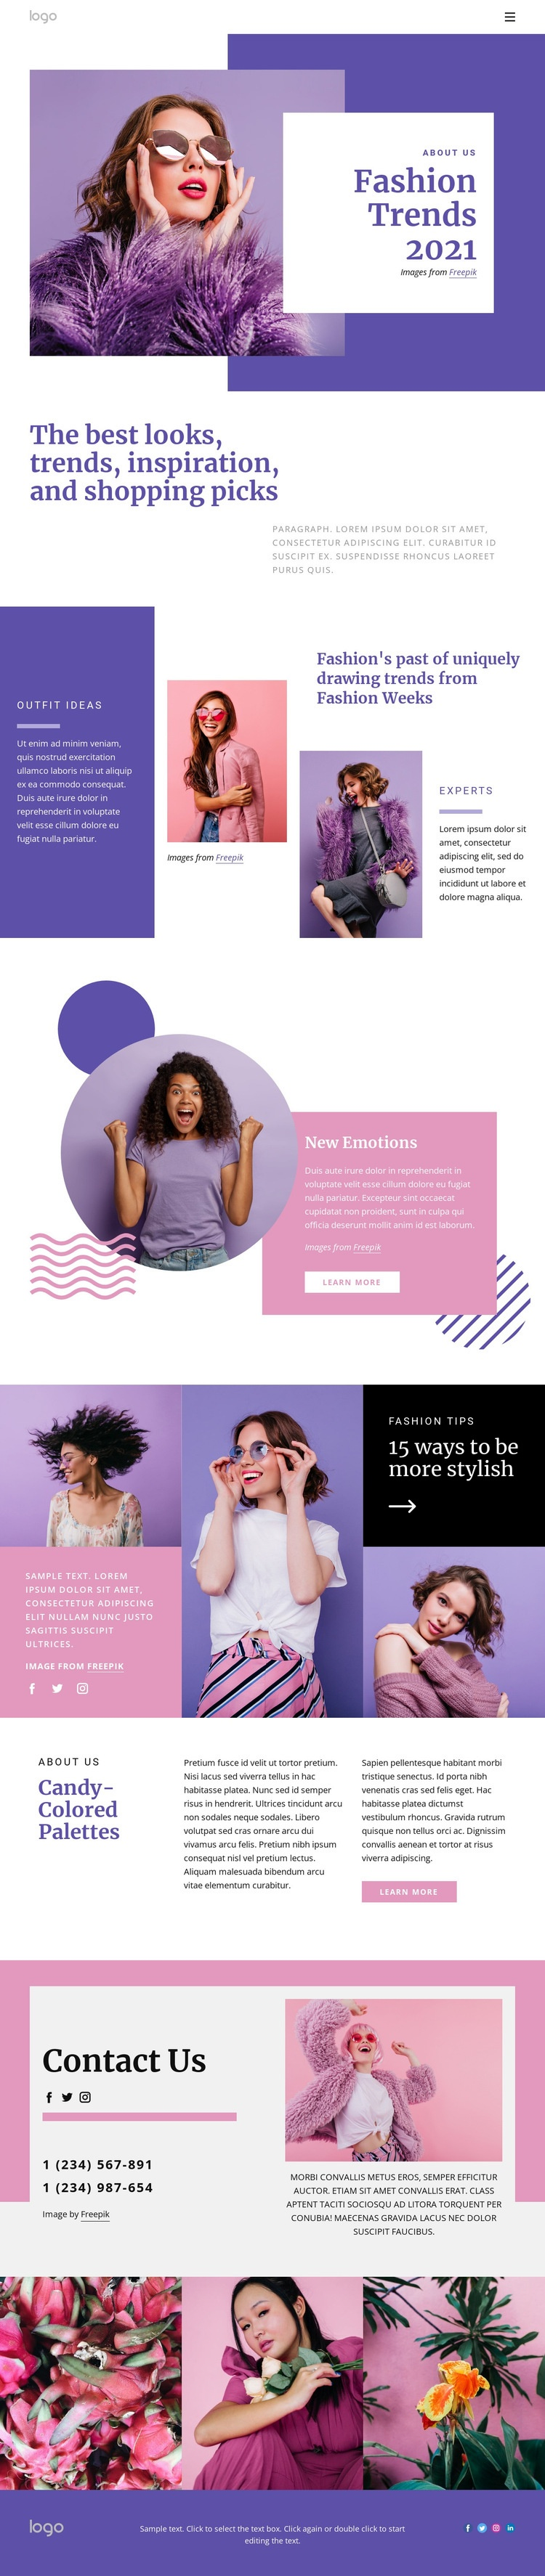 Get the hottest styles Web Page Designer